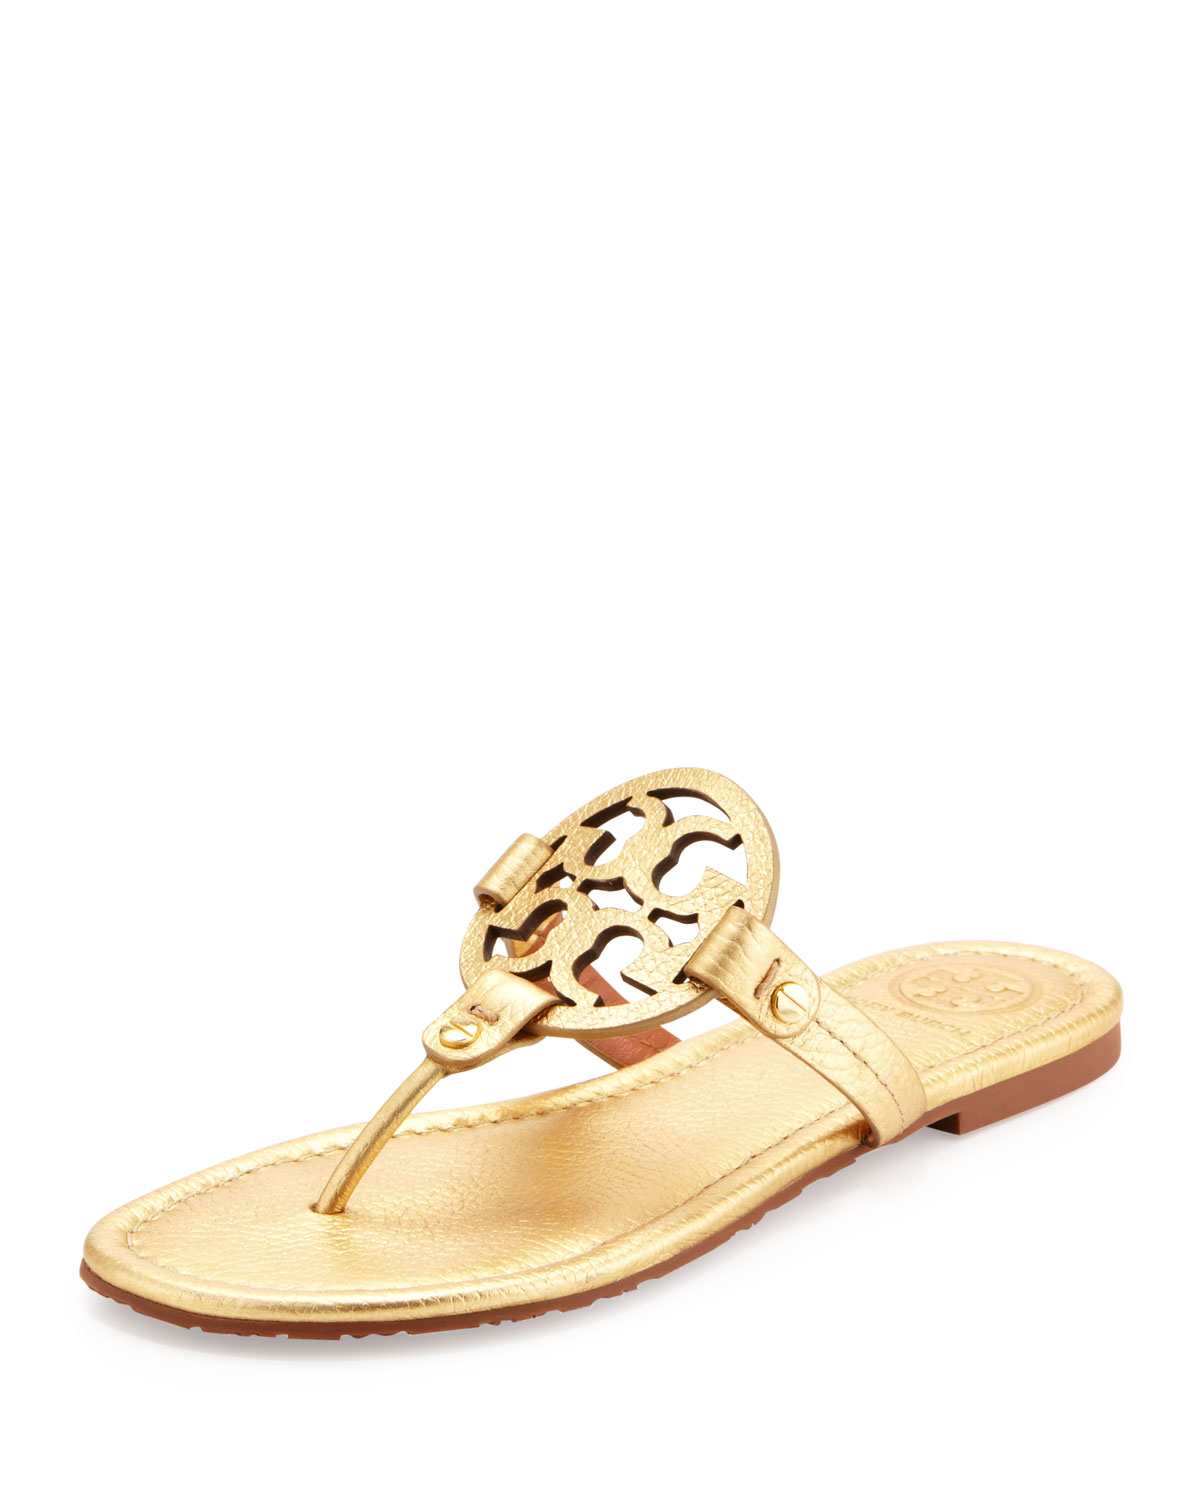 349f5c14f4c Tory Burch Tory Burch Miller Metallic Logo Thong Sandals